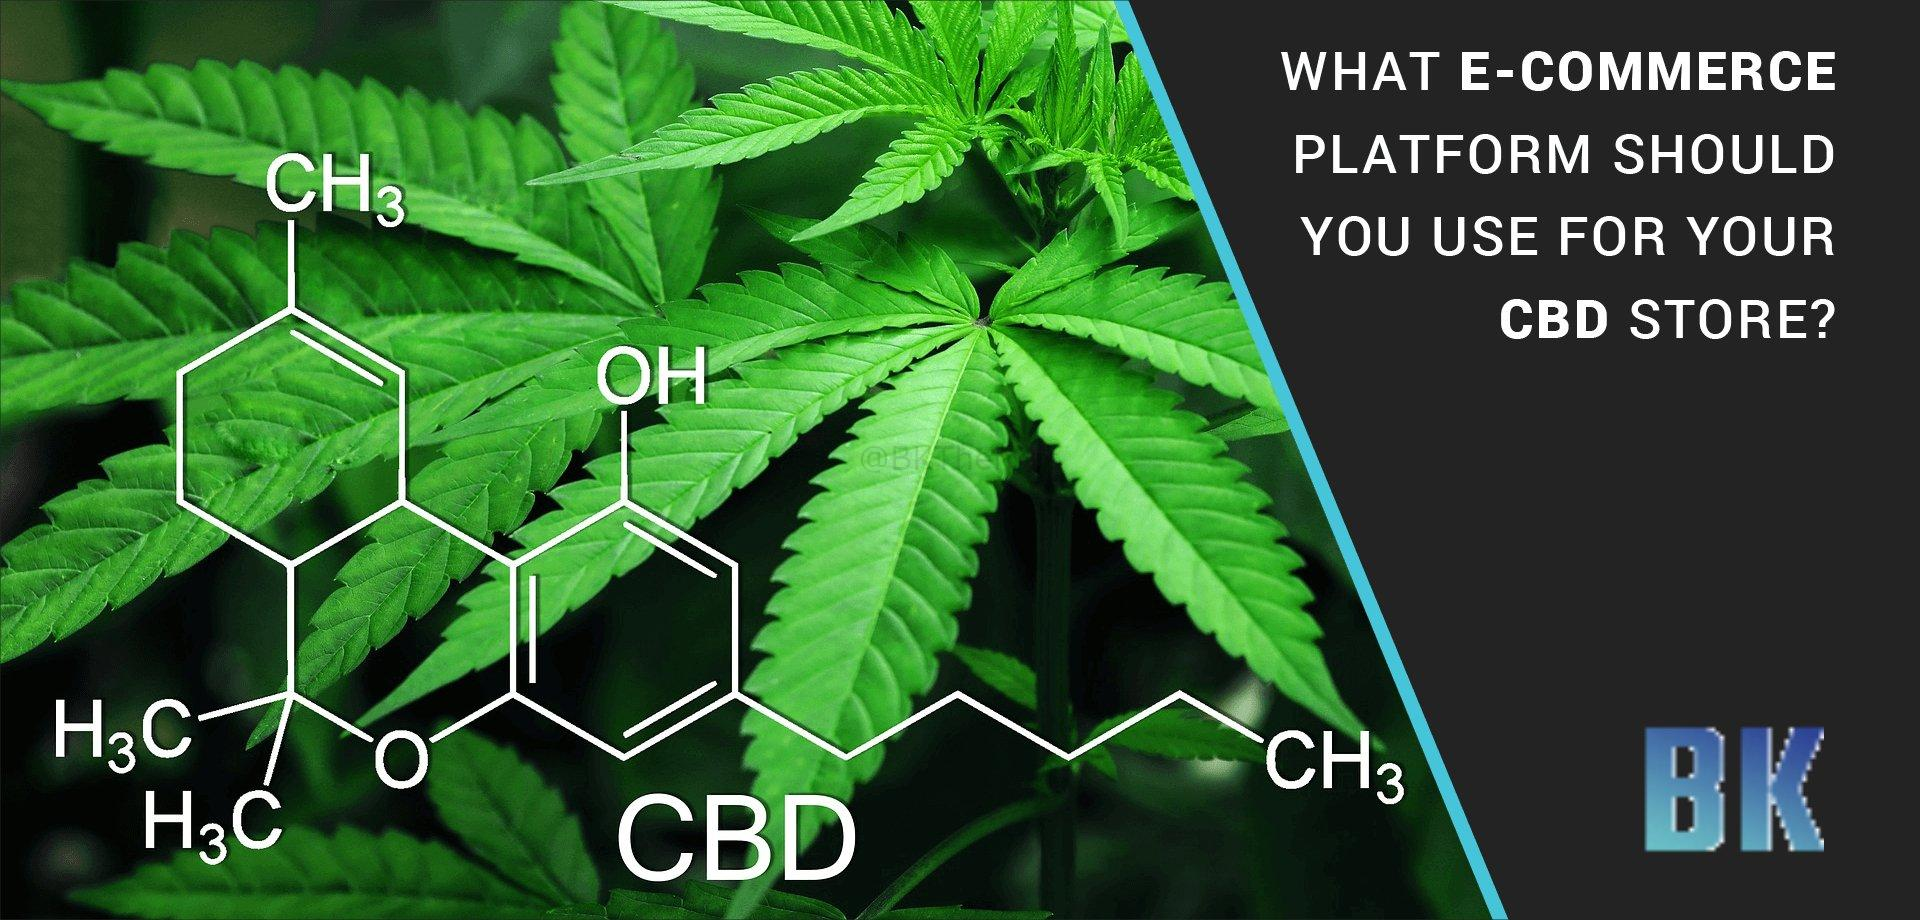 what platforms allow CBD